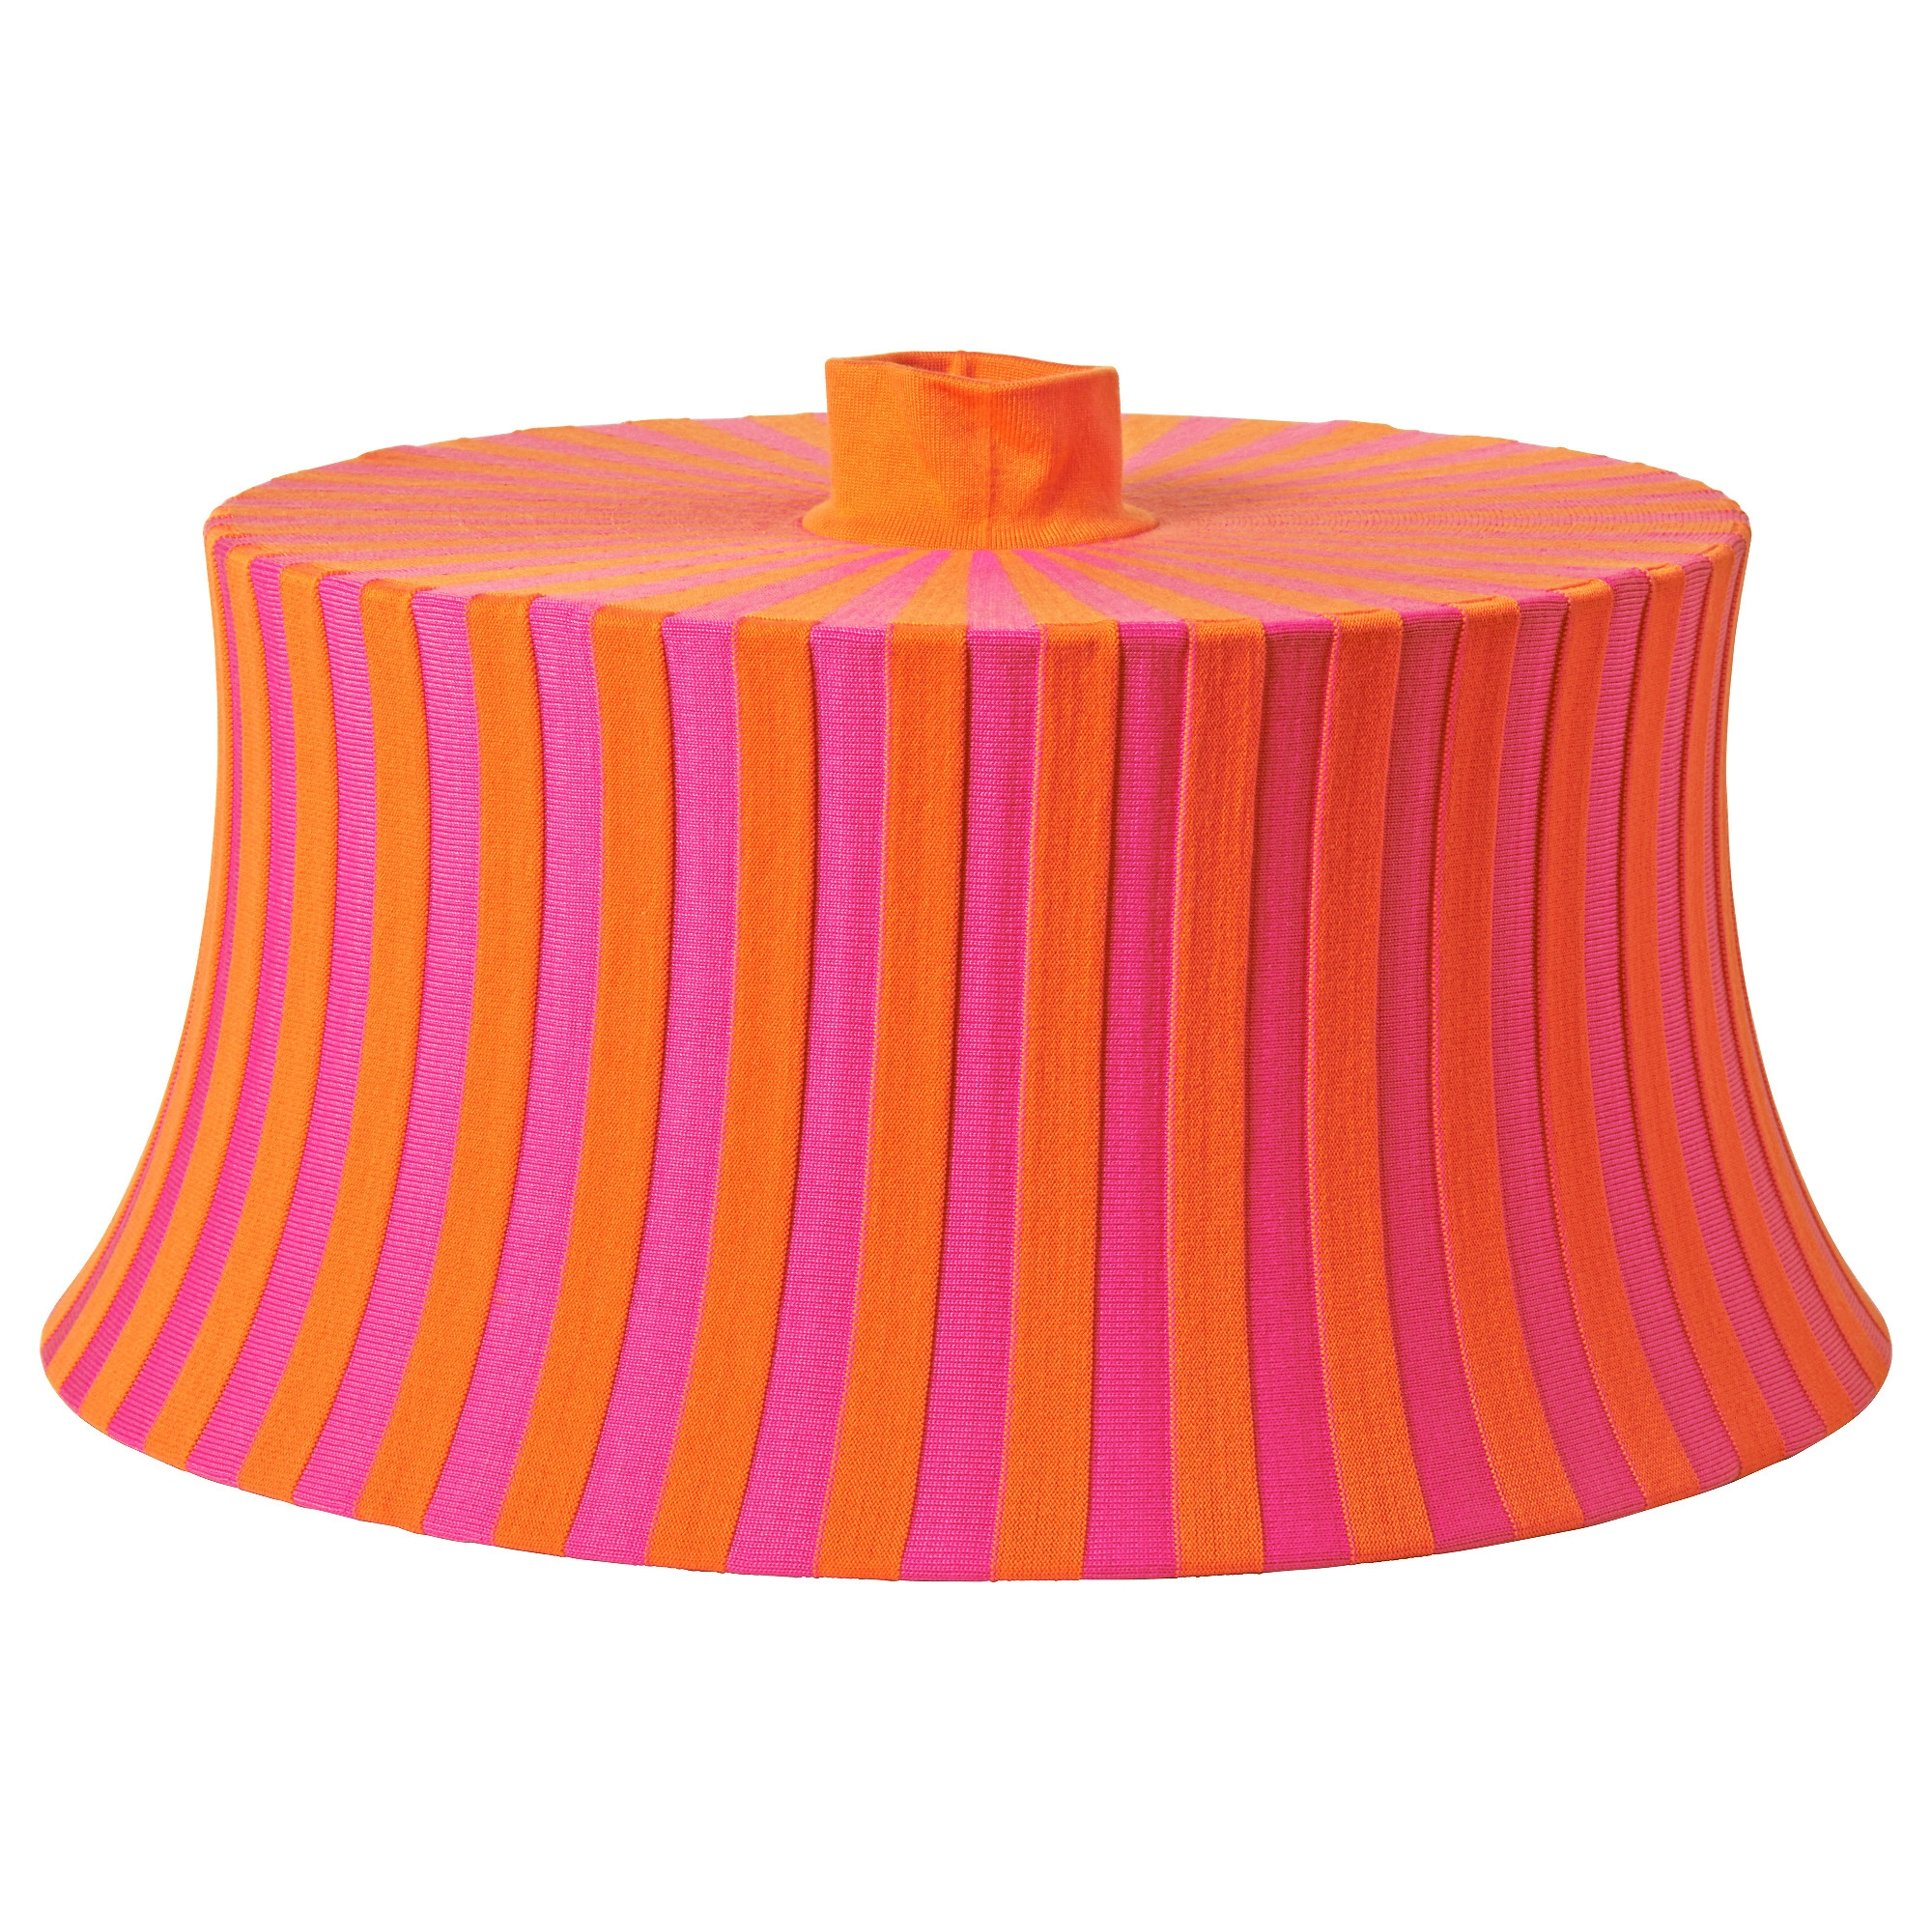 Ikea Fyndig Spüle Erfahrung ~ Floor Lamp Shade Replacement Ikea Ã?MTEVIK lamp shade, orange, pink